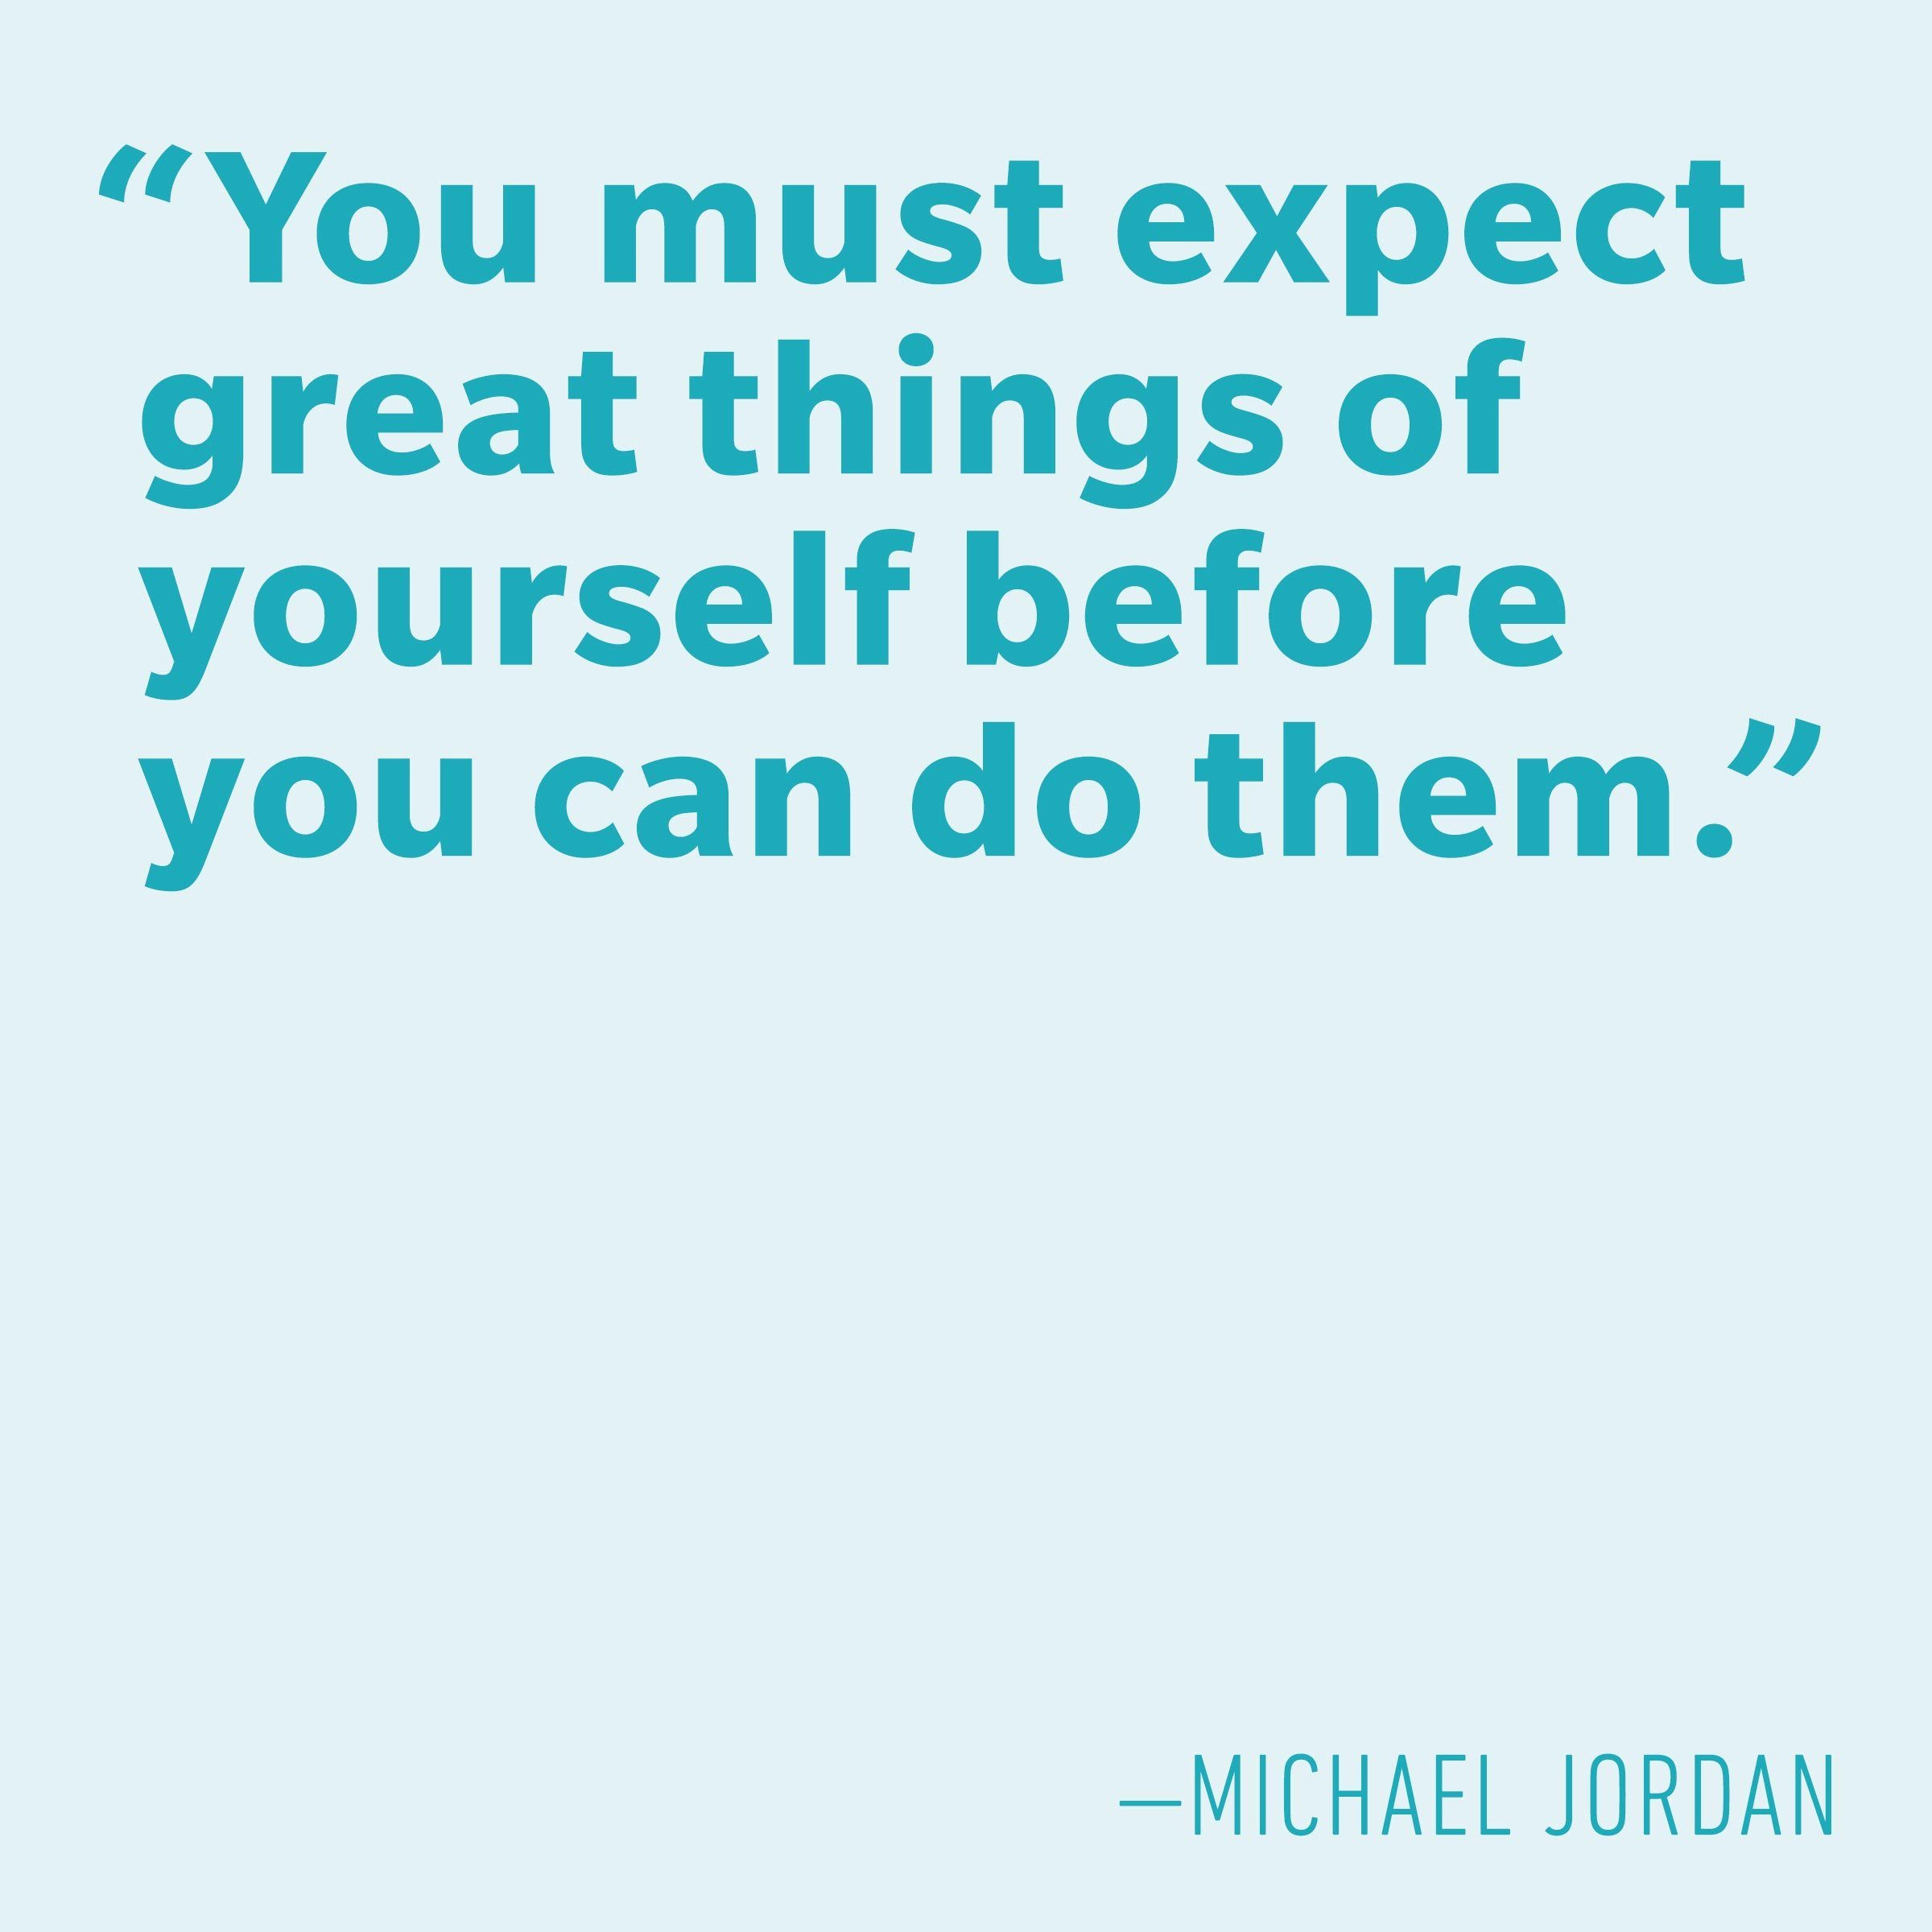 Motivational quotes - Michael Jordan